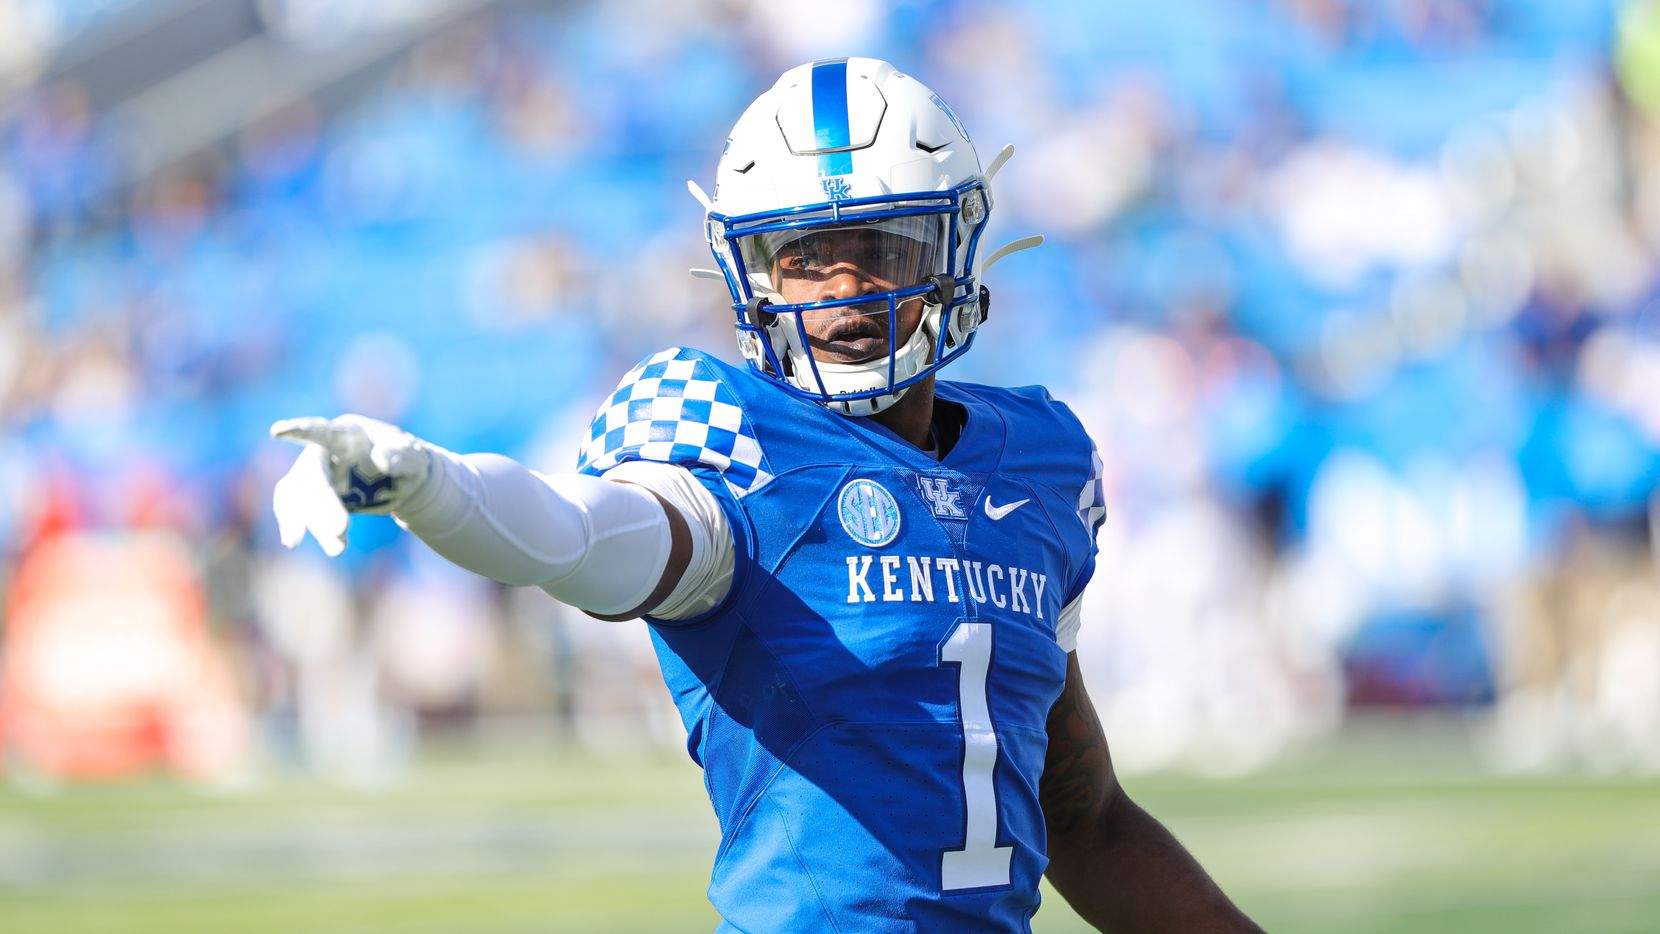 Kelvin Joseph #1 of the Kentucky Wildcats prepares for a play against the Ole Miss Rebels on October 3, 2020 at Commonwealth Stadium in Lexington, Kentucky.